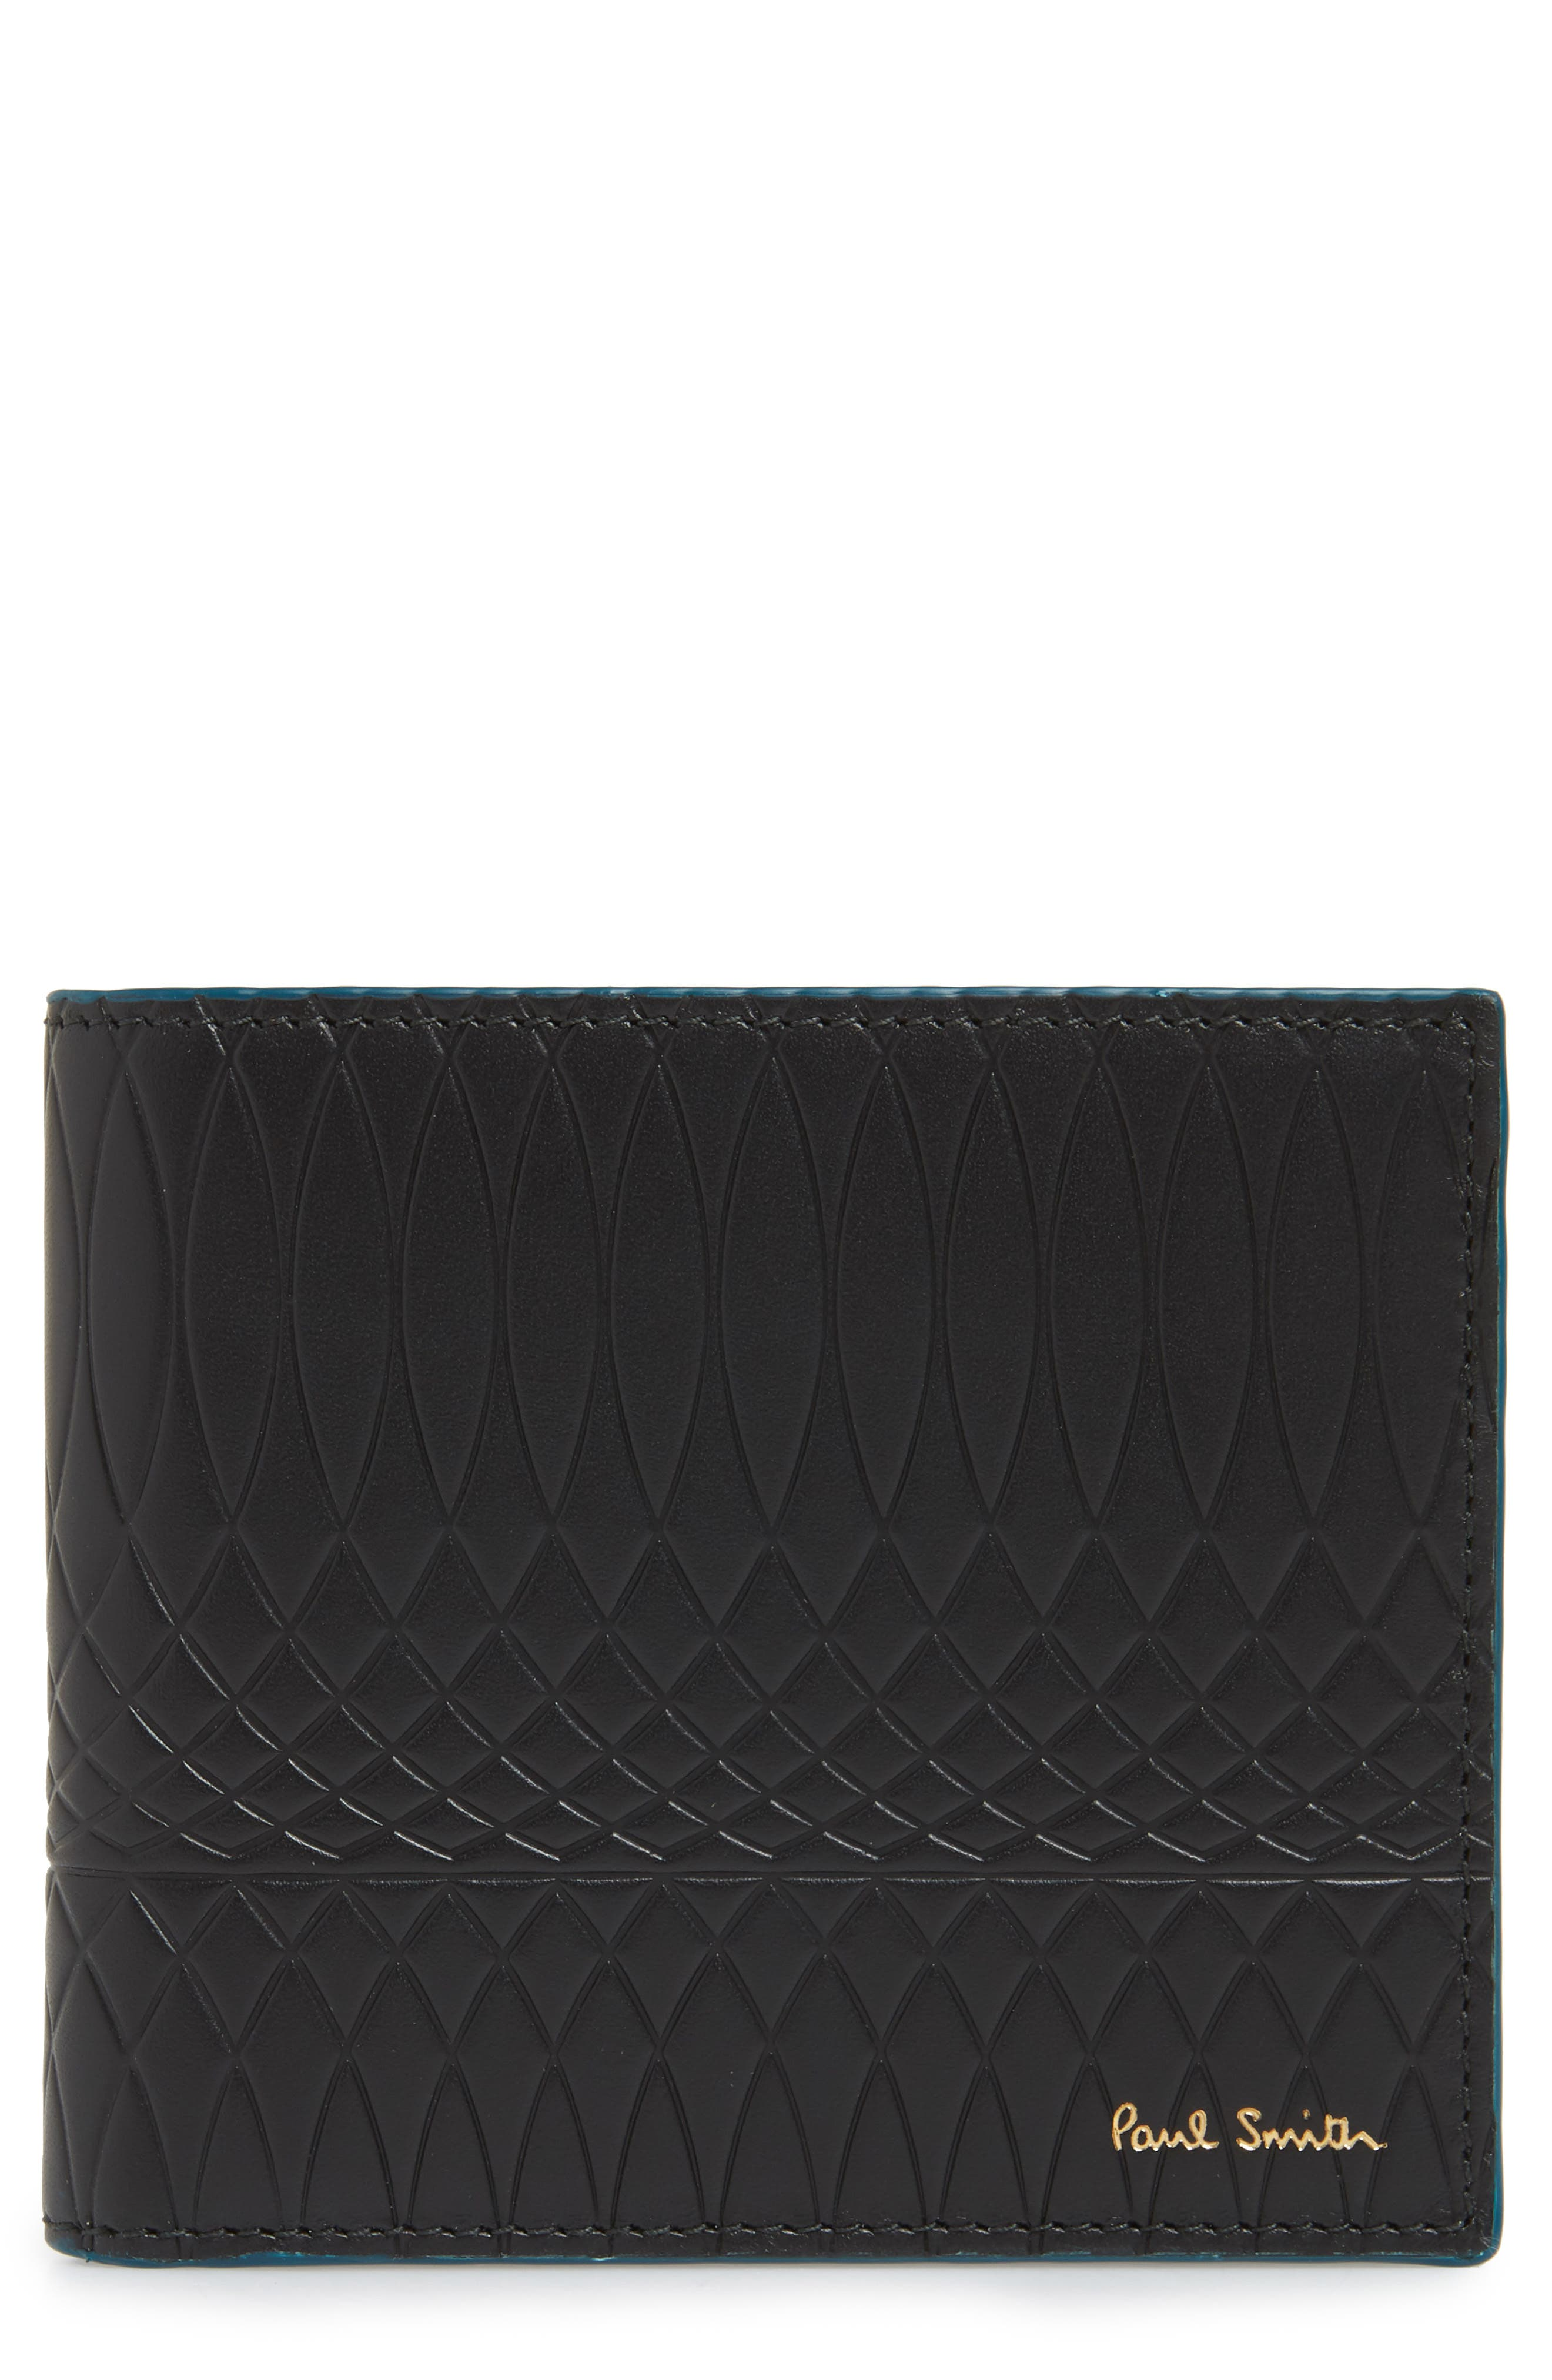 Embossed Leather Billfold Wallet,                         Main,                         color, BLACK